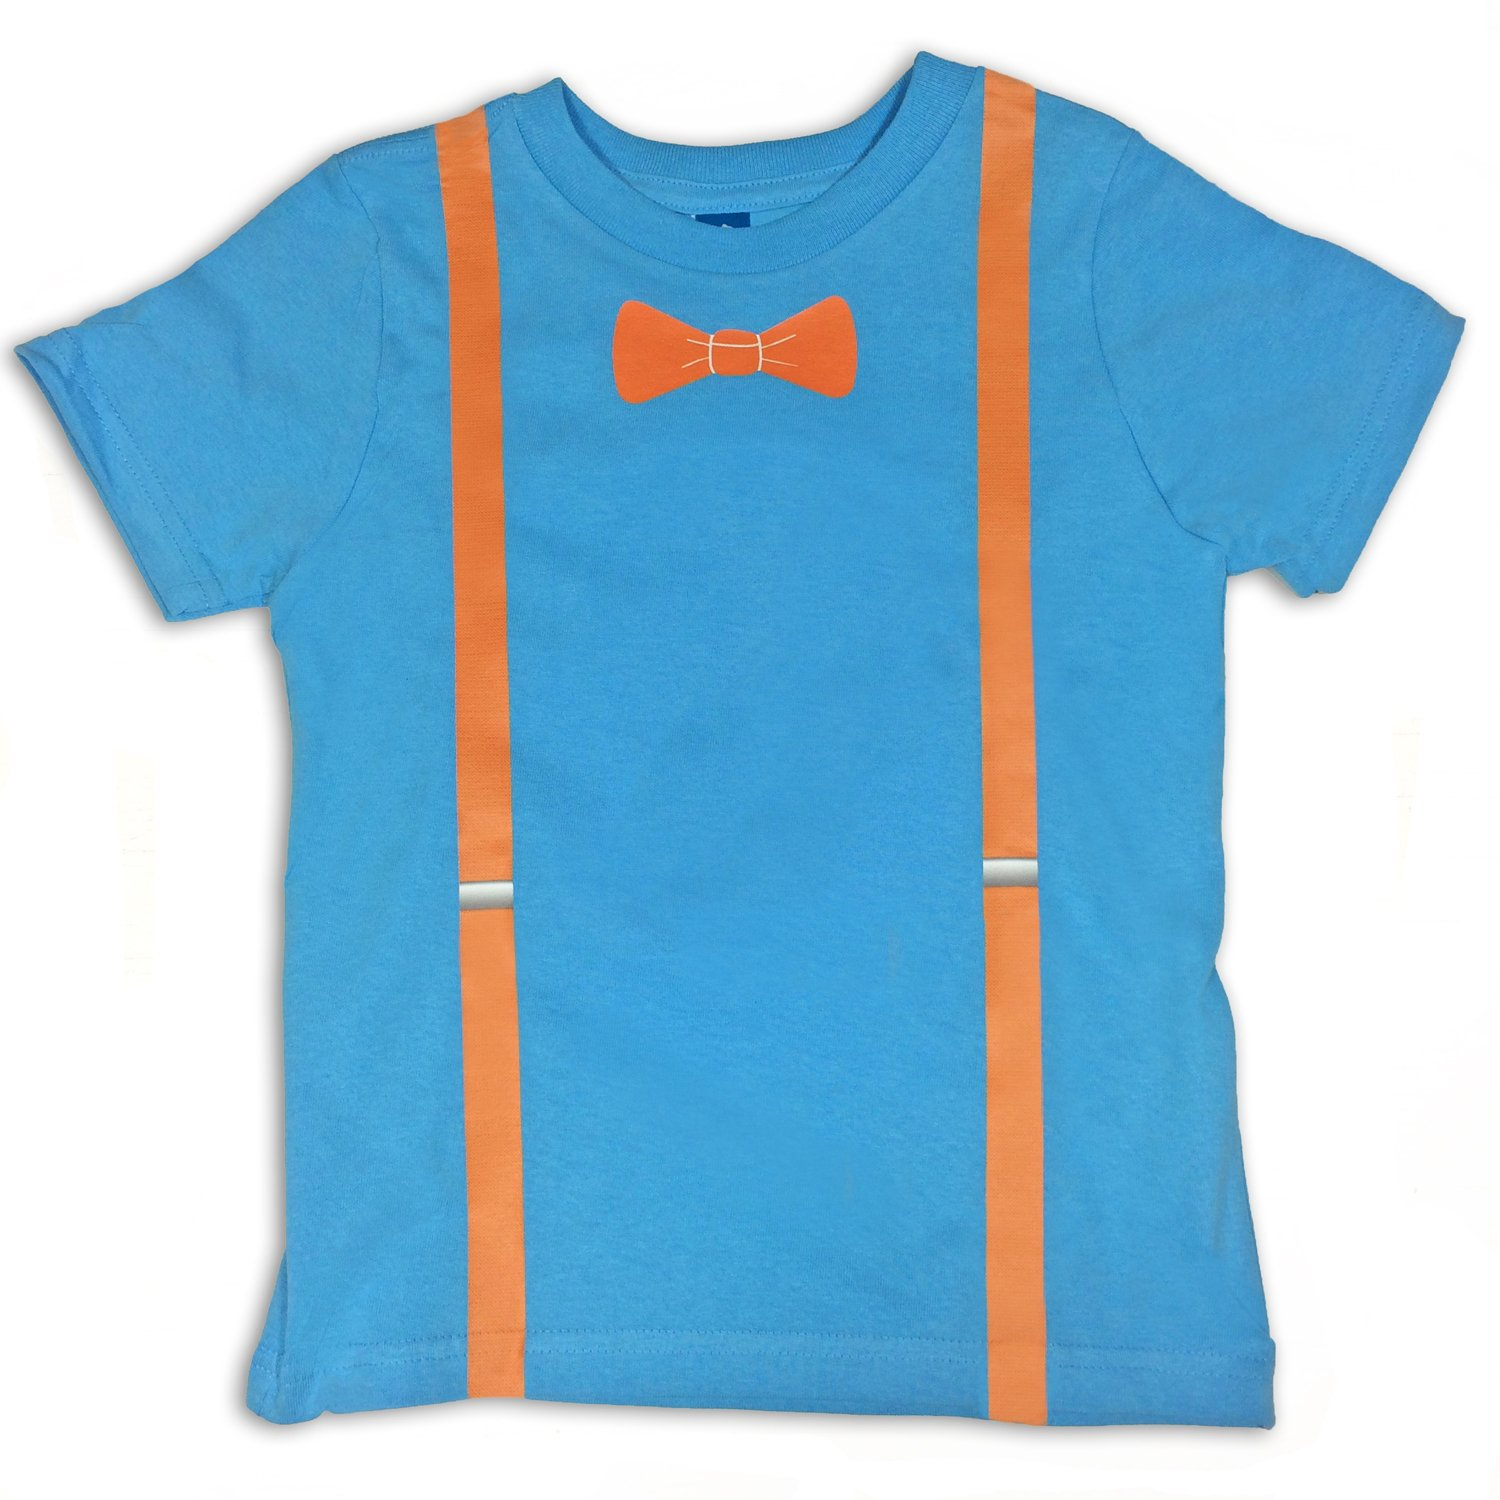 Blippi Replica Shirt